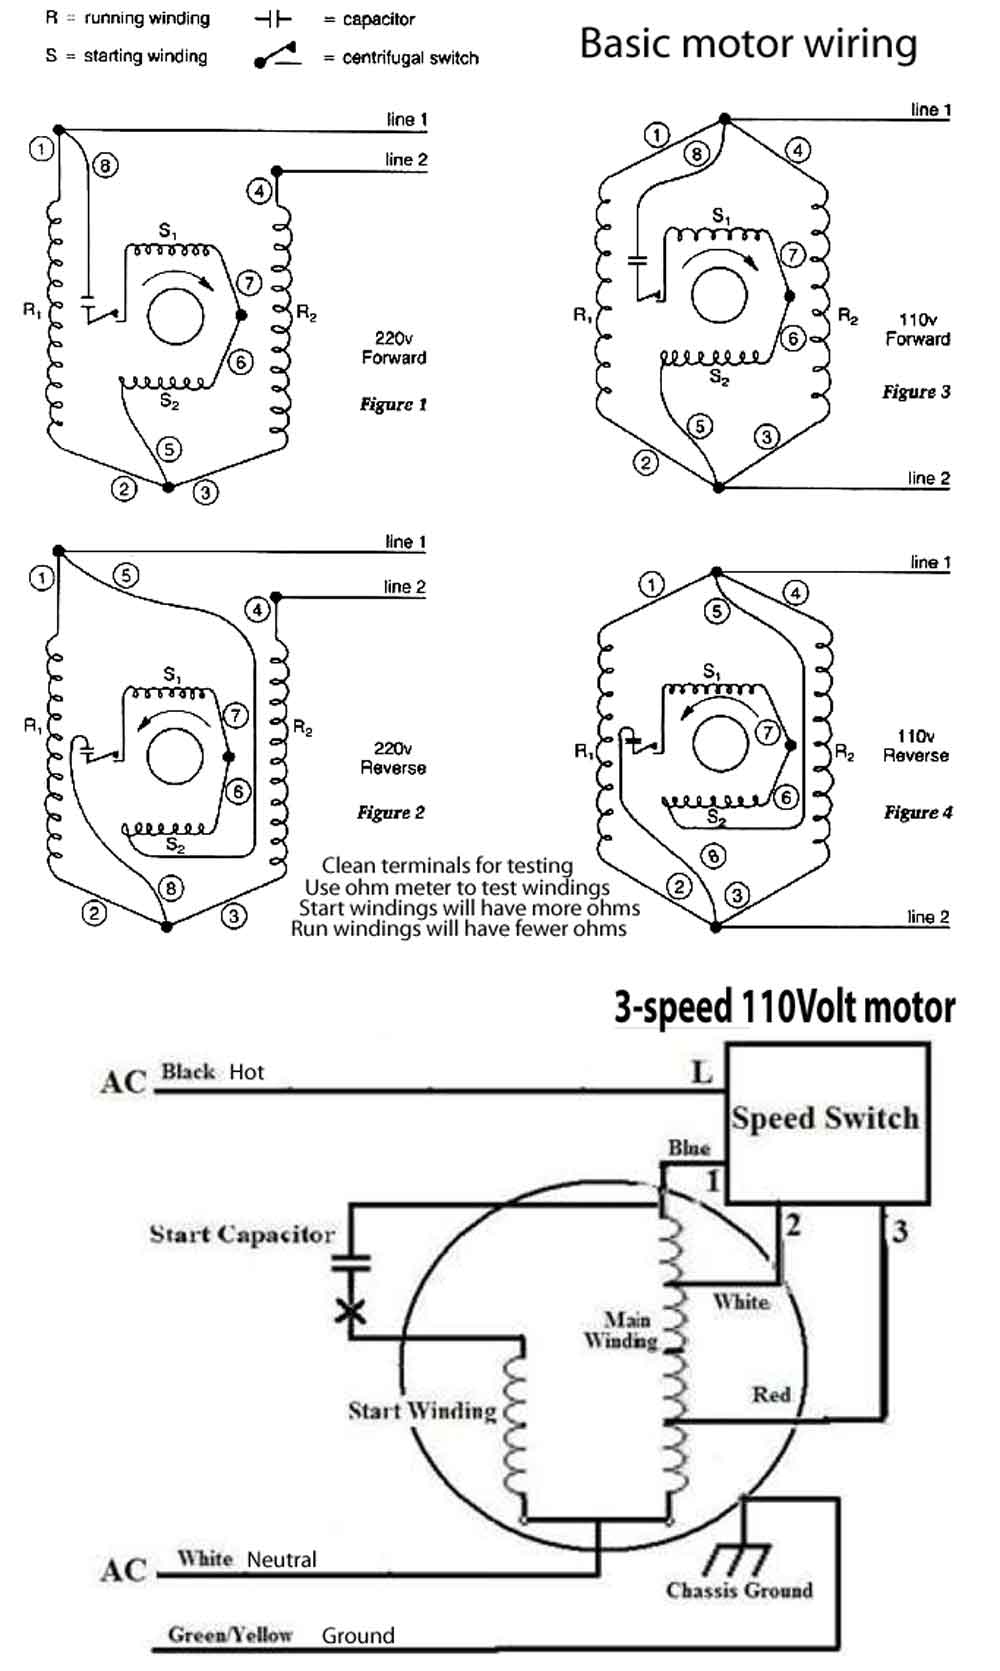 Motor wiring 500 3 phase fan motor wiring diagram 3 phase ac motor wiring \u2022 wiring Furnace Blower Motor Wiring Diagram at aneh.co